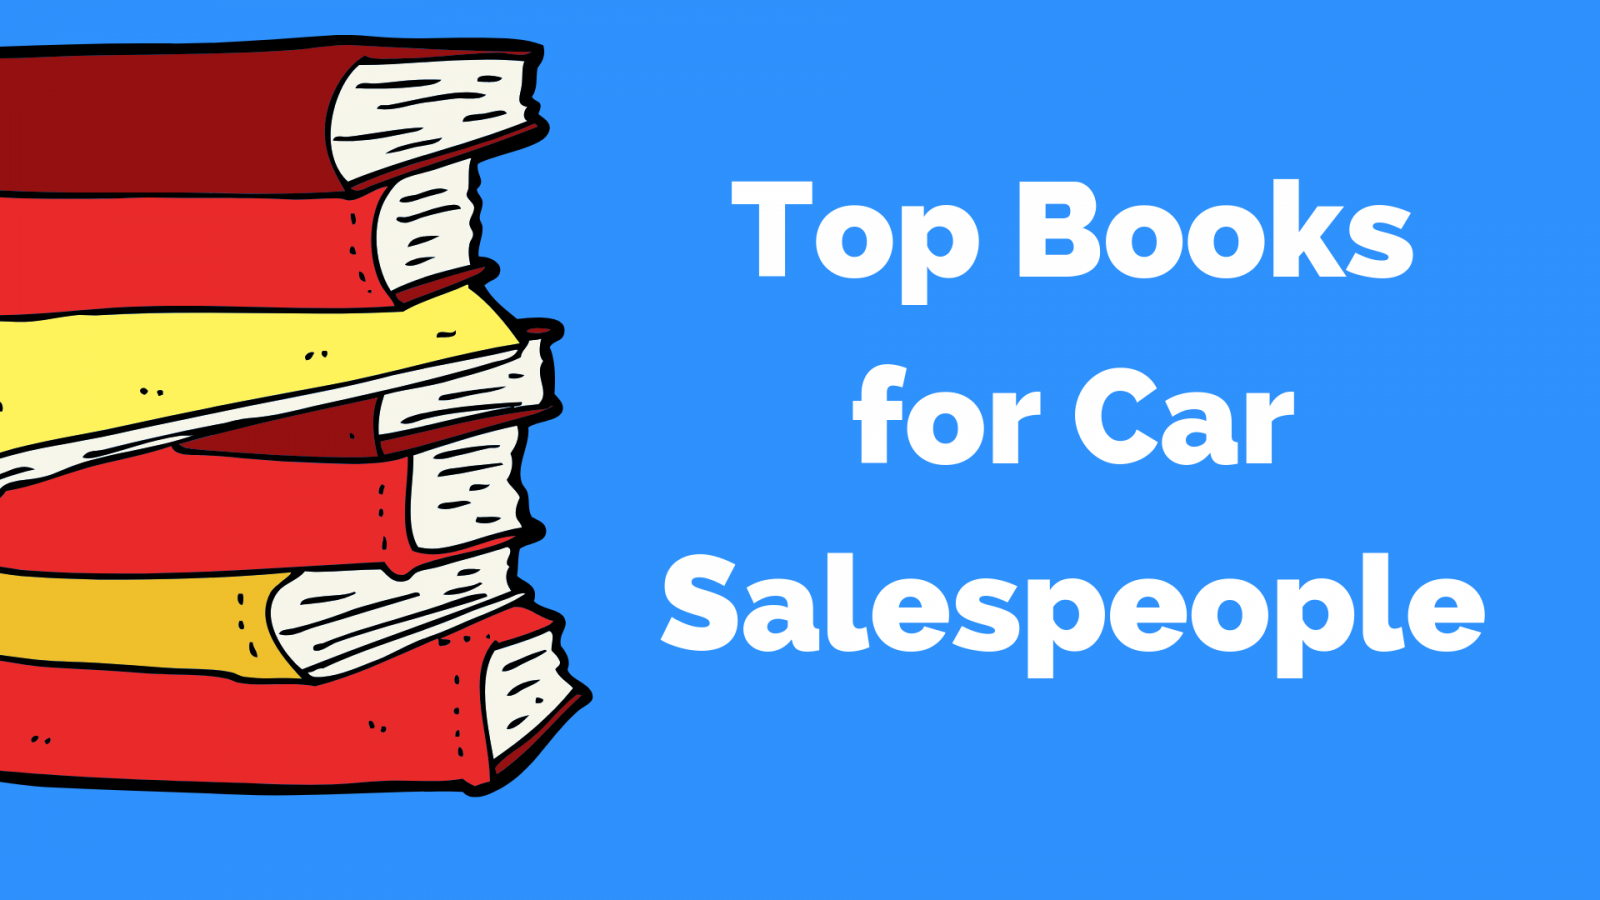 Complete list with reviews, top sales books for car salespeople